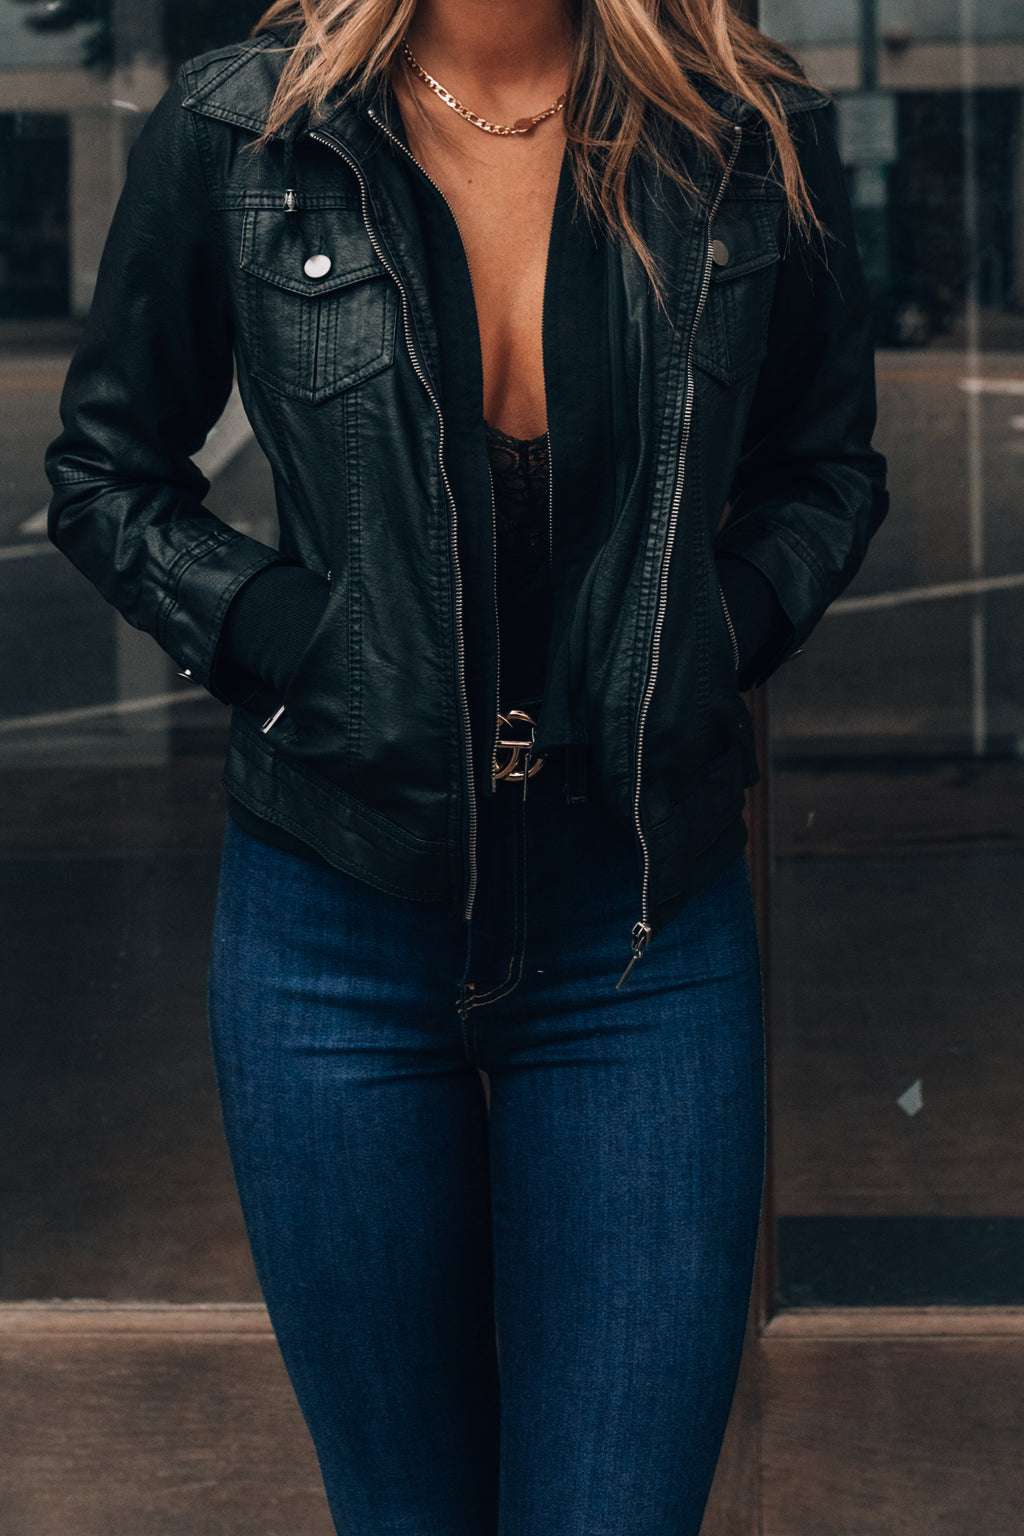 Jet Set Vegan Leather Jacket (Black) PRE-ORDER Ships Mid November